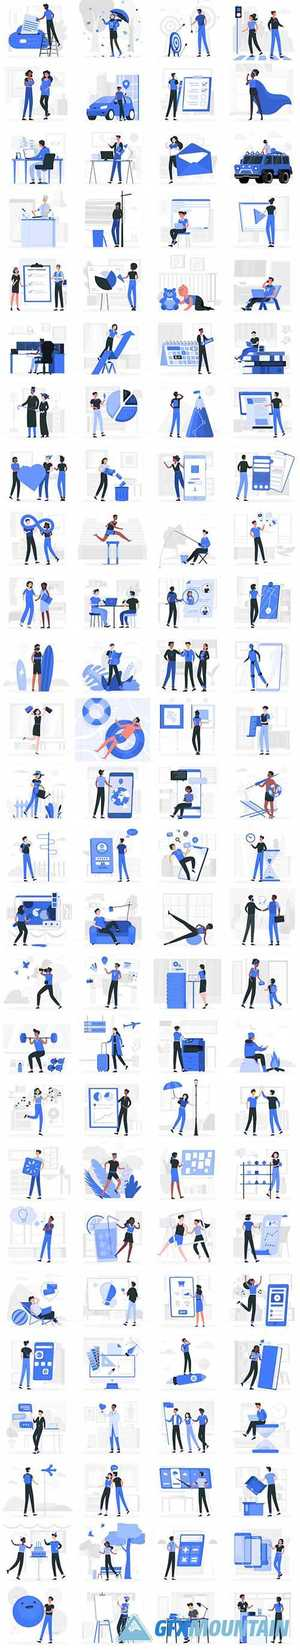 Vector Blu Illustrations People Concept